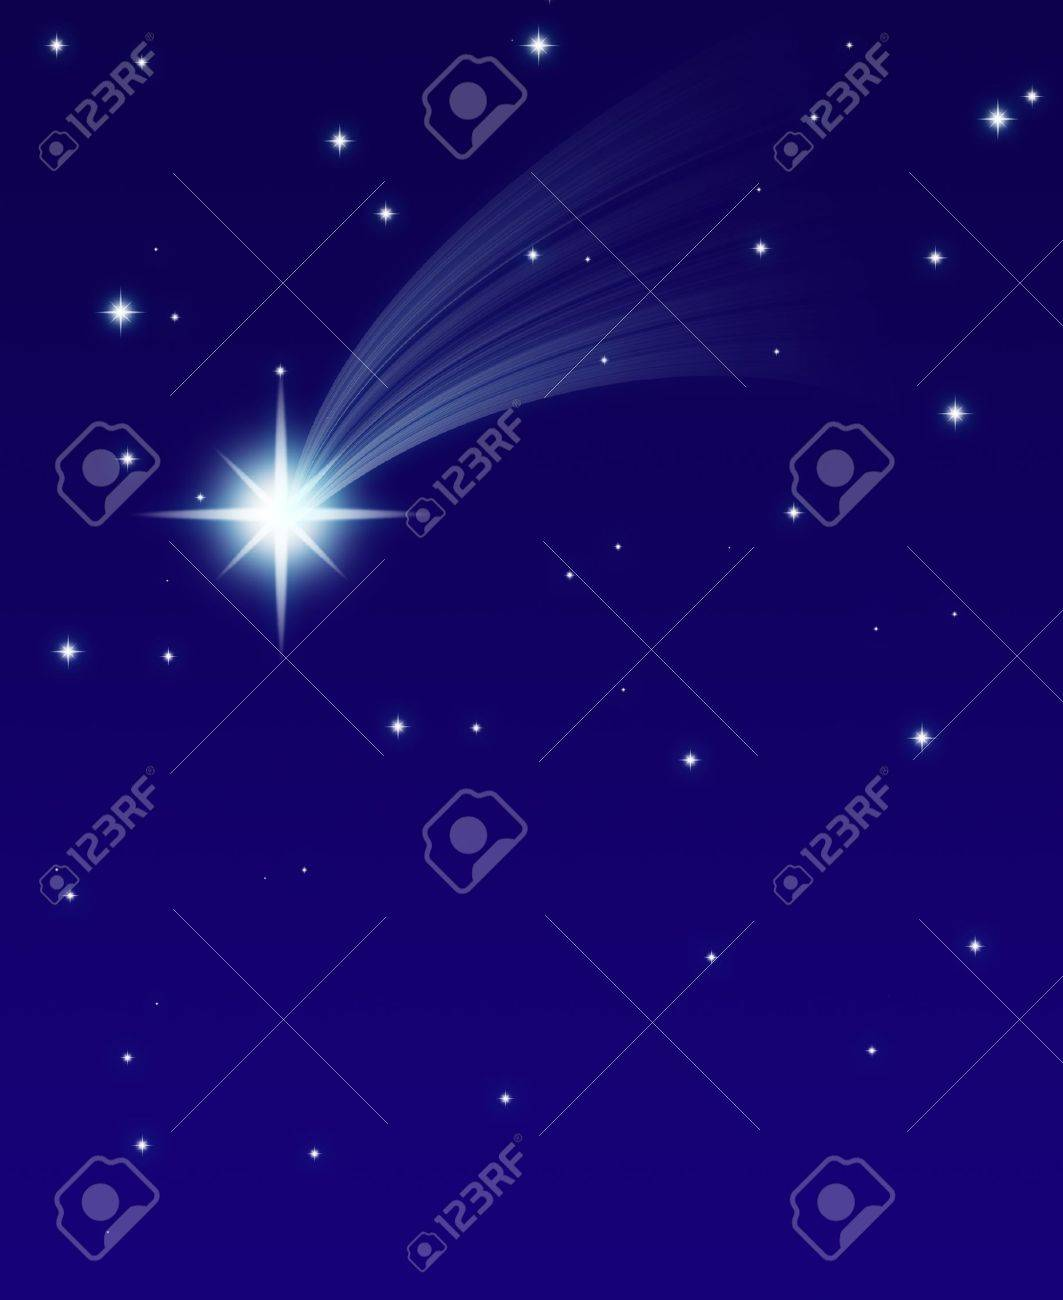 falling star, on a dark starry background Stock Photo - 16327820